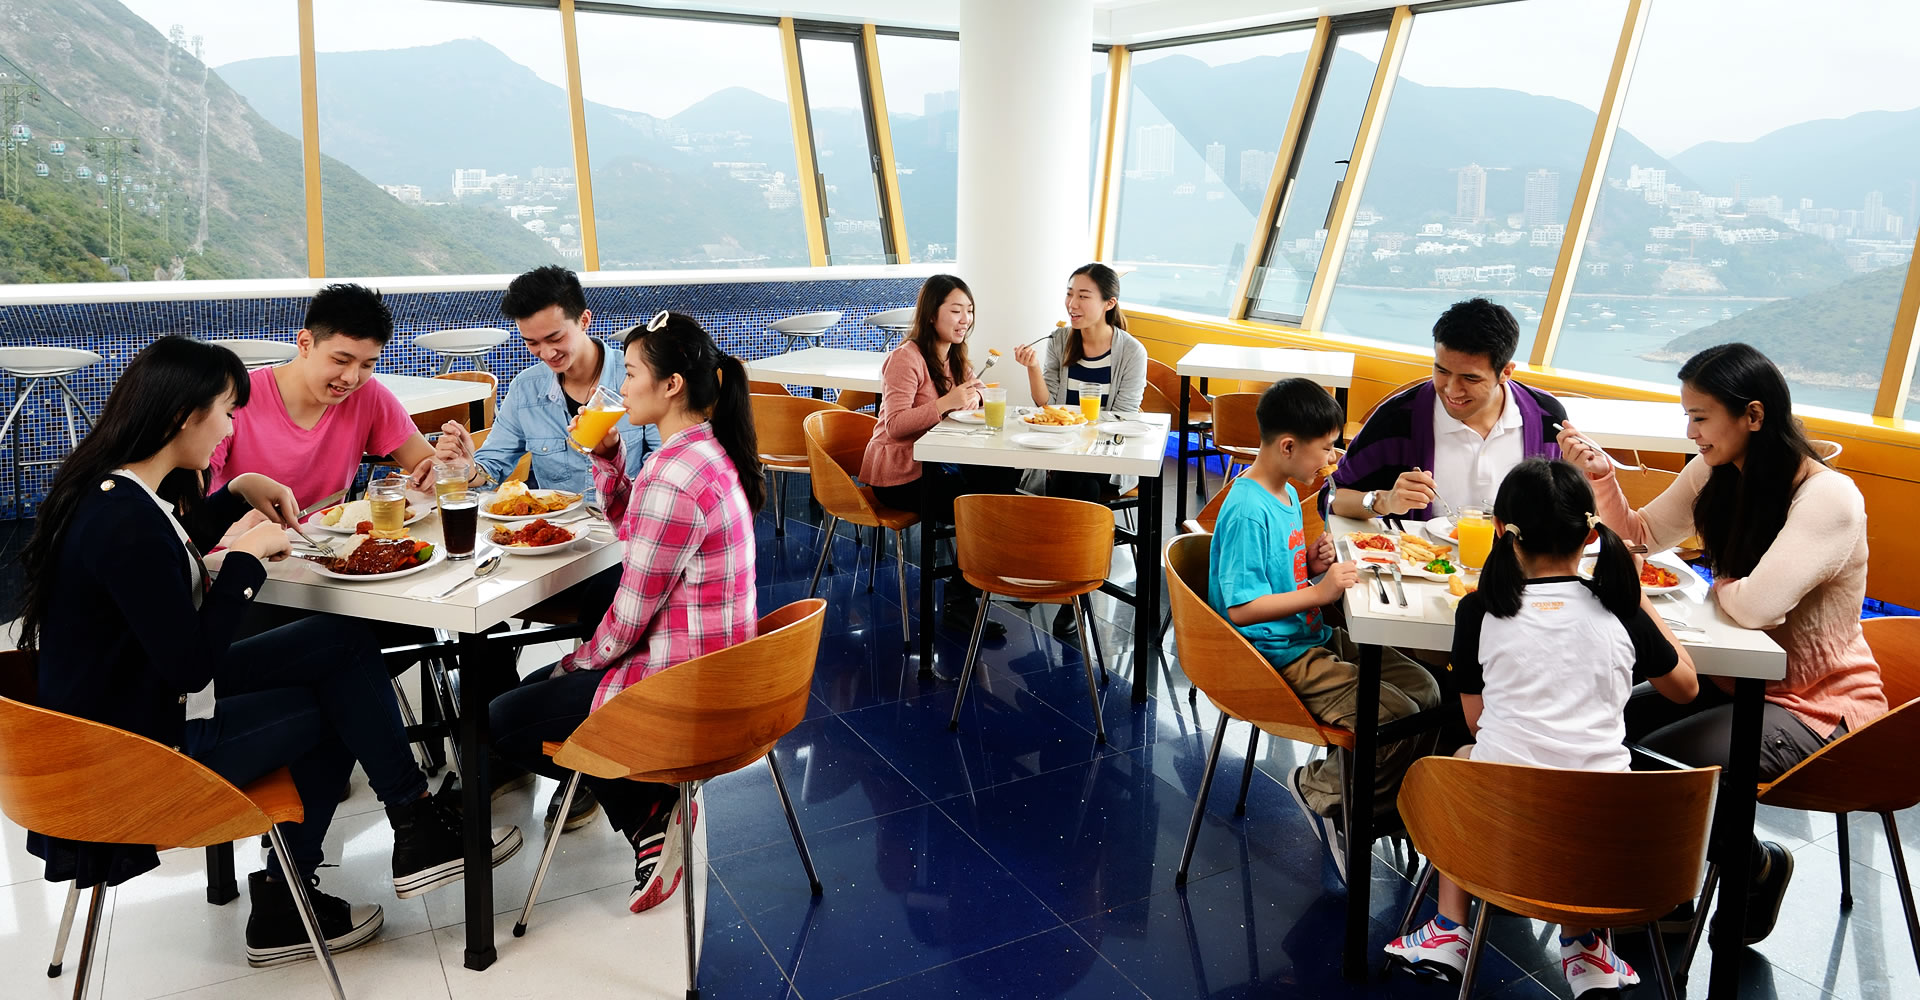 https://media.oceanpark.com.hk/files/s3fs-public/TheBayviewRestaurant_052.jpg